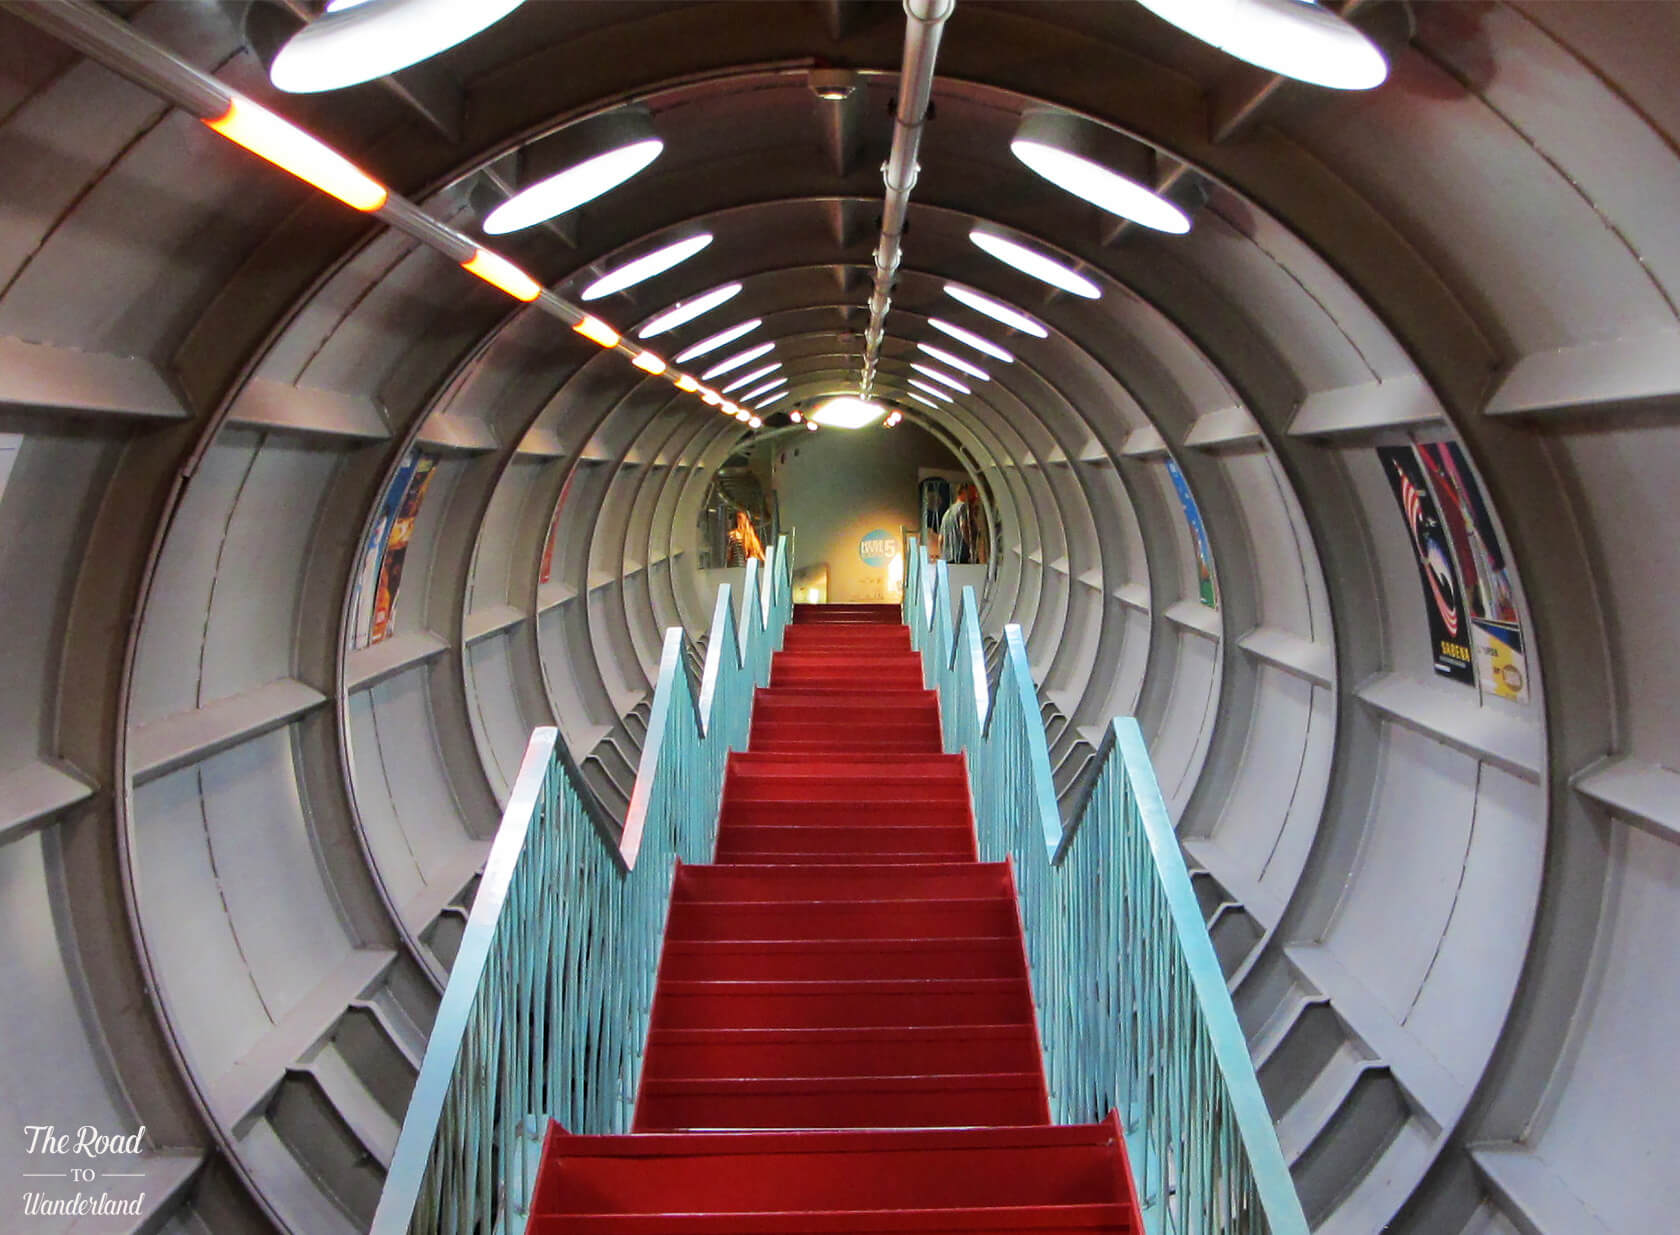 Set of stairs leading up one of the Atomium's tubes to the next sphere